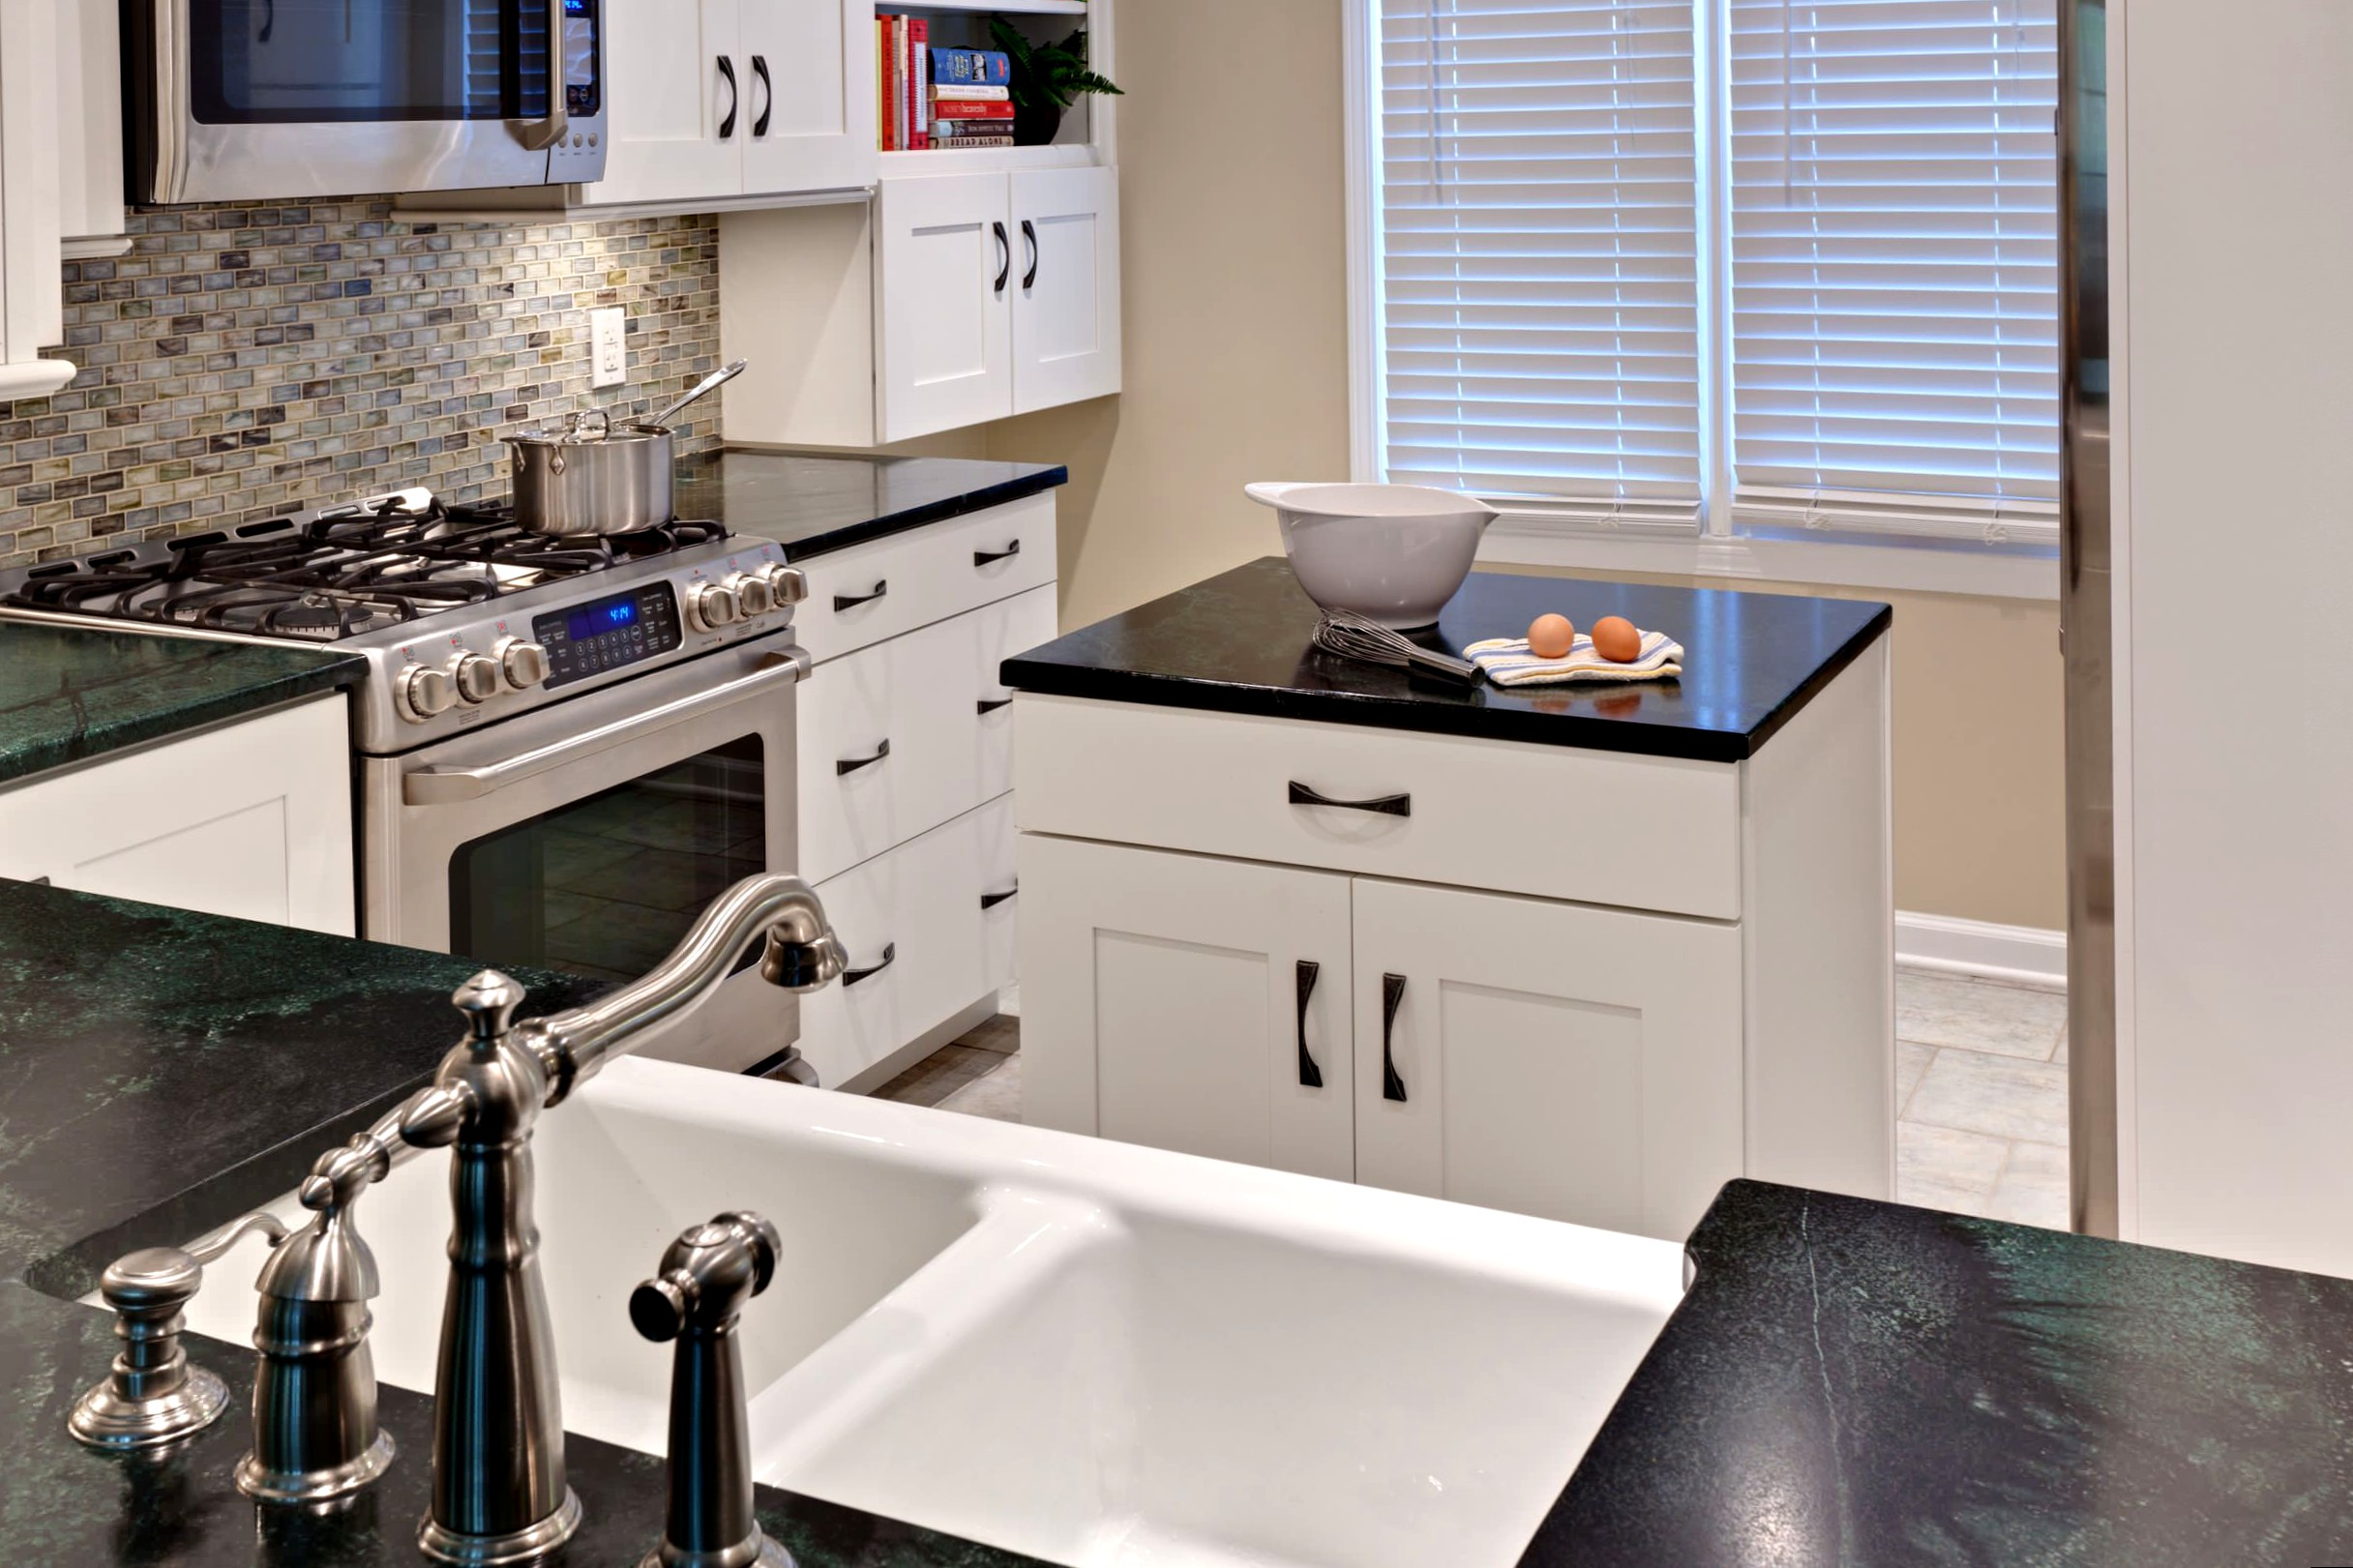 8522kitchen-photo-12756